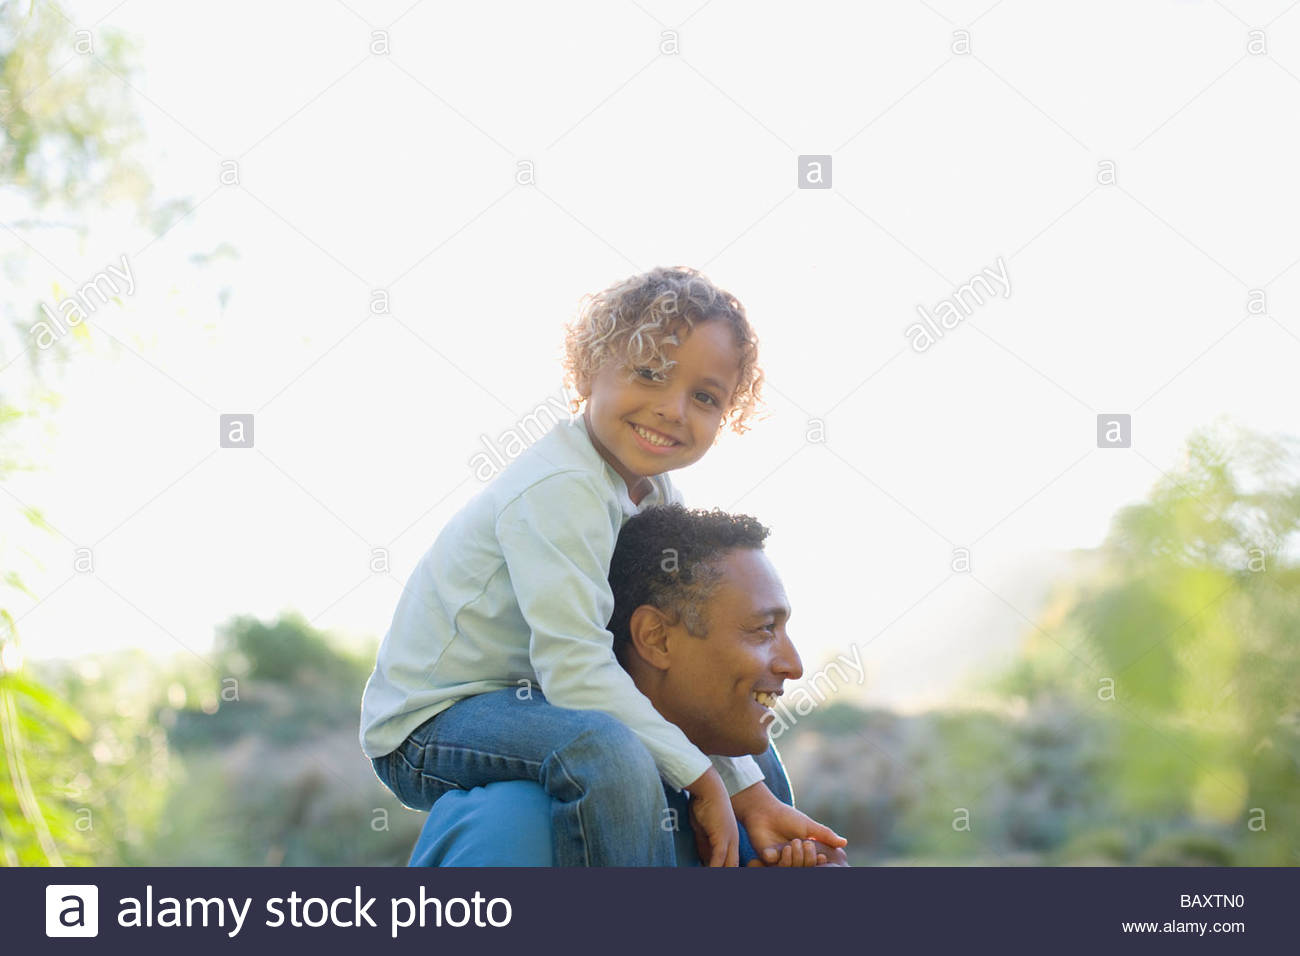 African boy sitting on father's shoulders - Stock Image